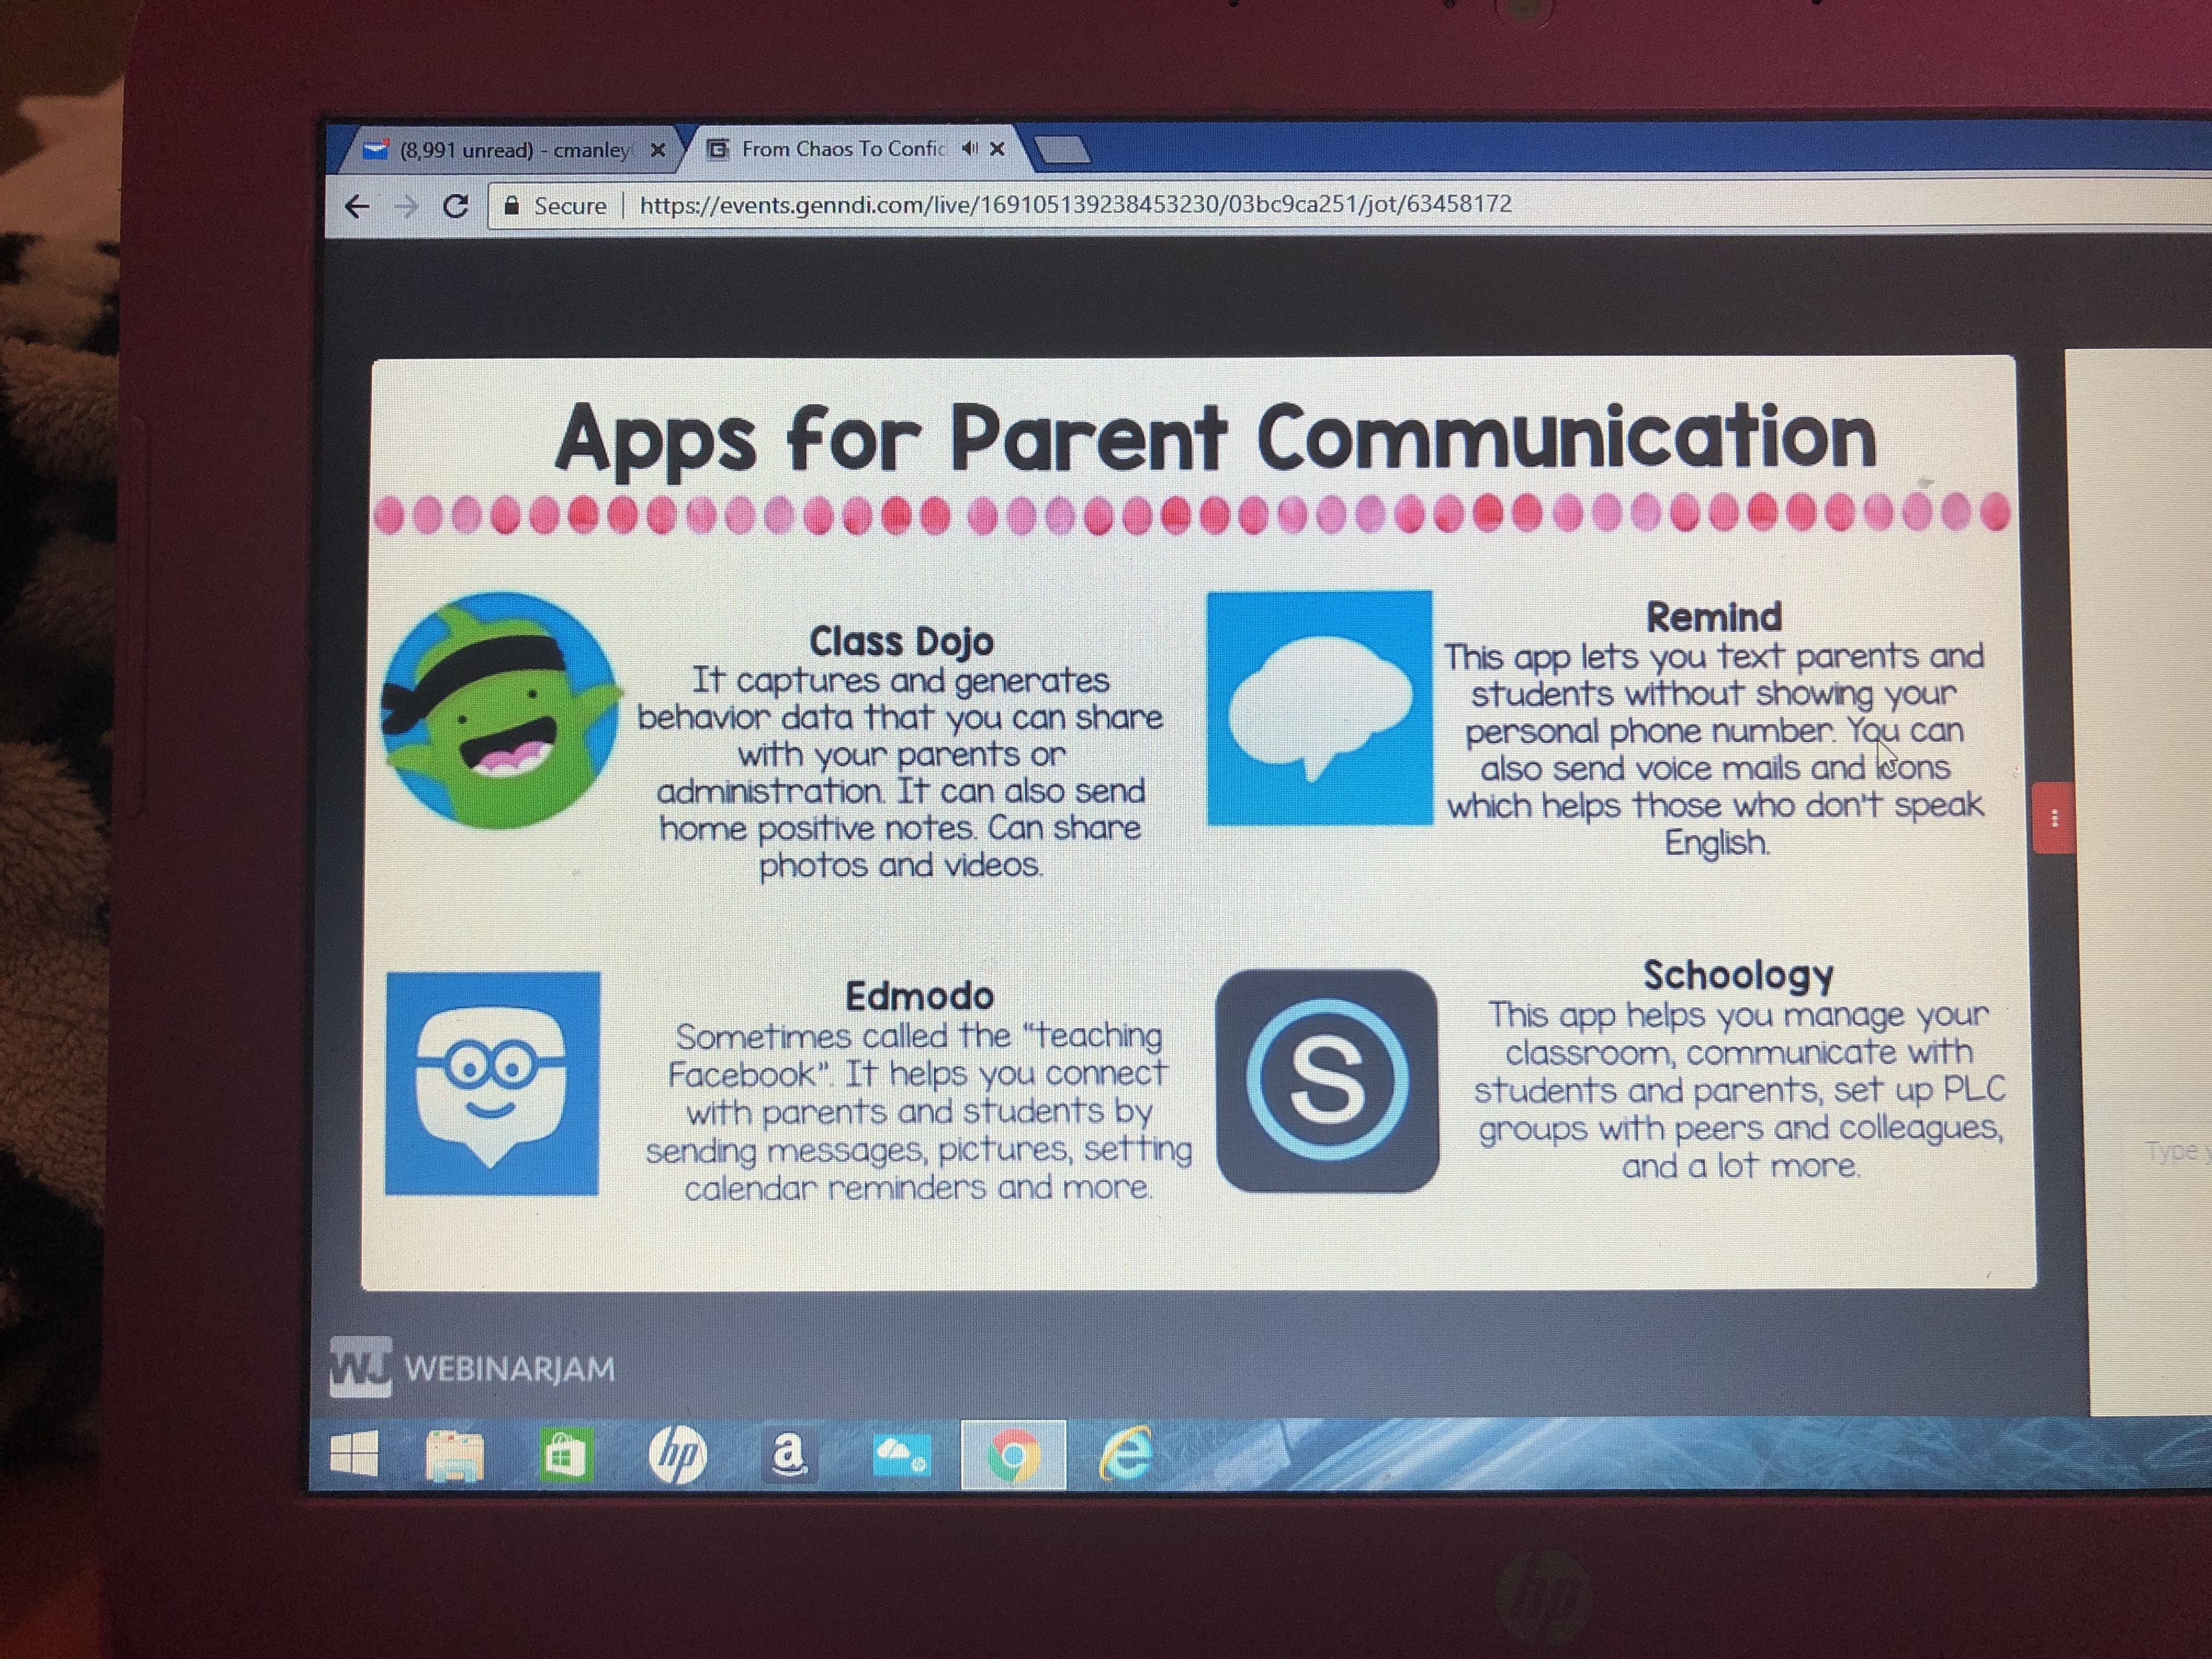 Pin By Chandra Manley On Classroom Management Parent Communication Class Dojo Classroom Management